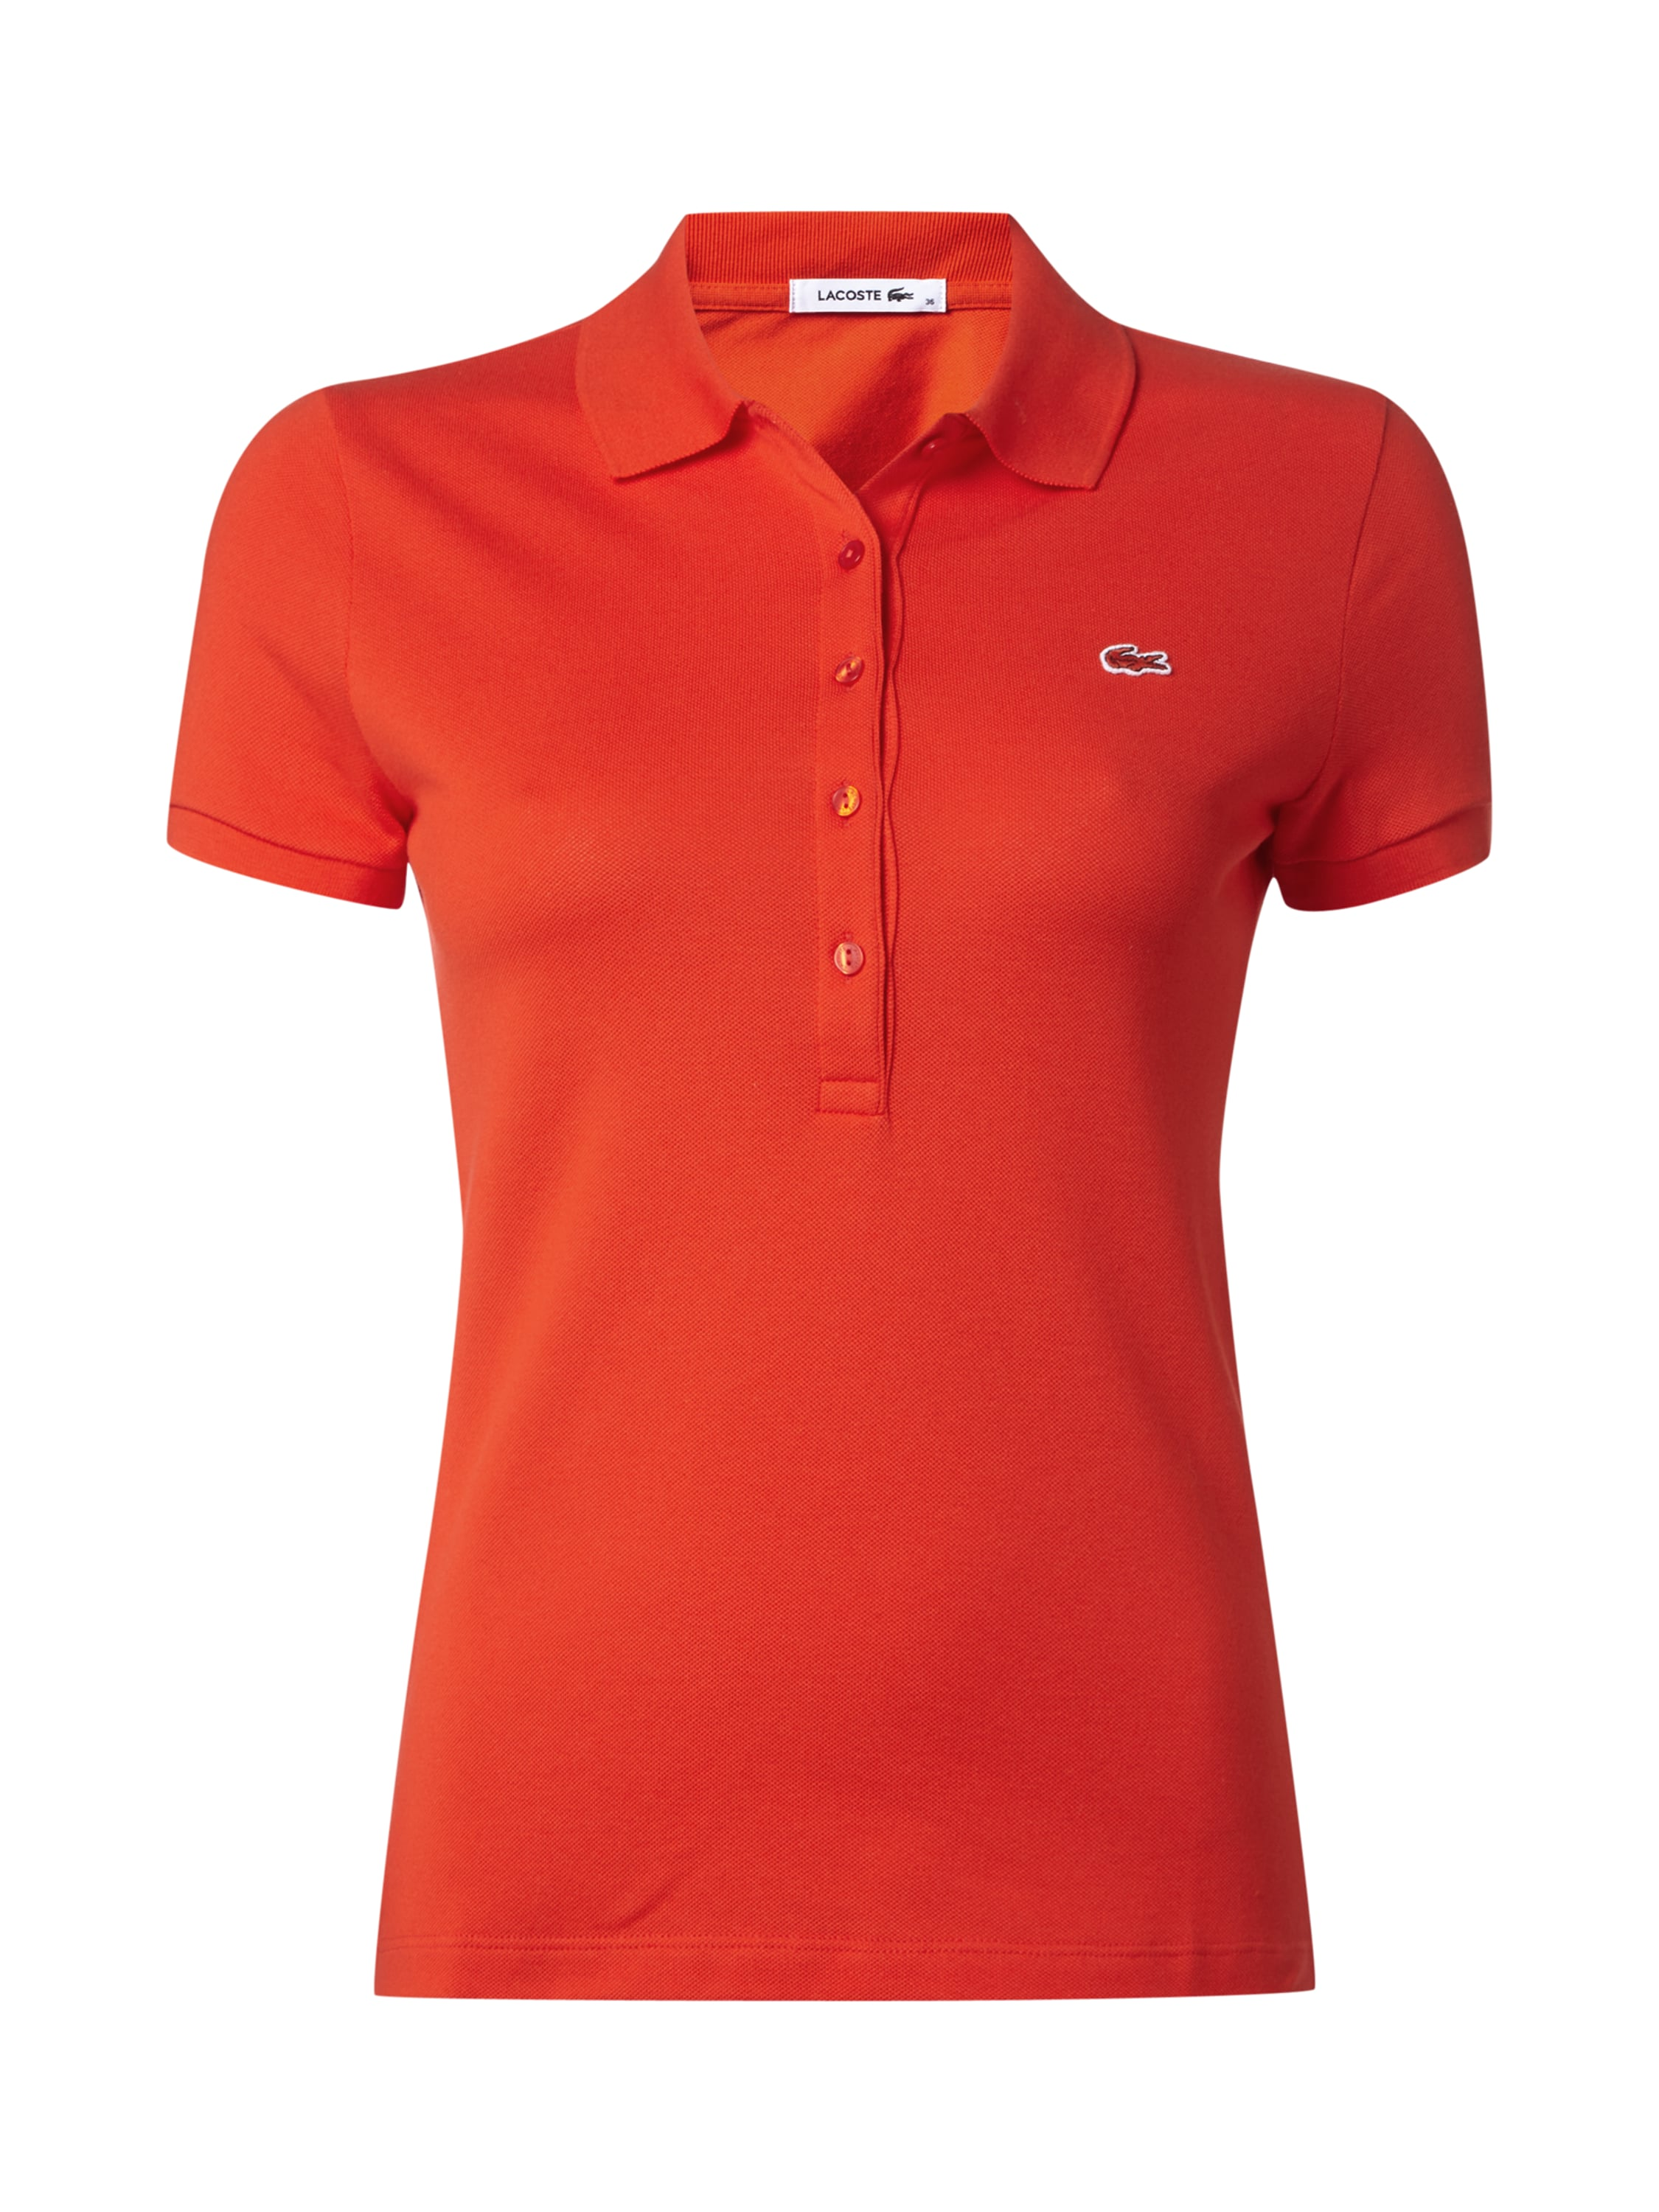 lacoste poloshirt mit logo aufn her in rot online kaufen 9398679 p c online shop. Black Bedroom Furniture Sets. Home Design Ideas